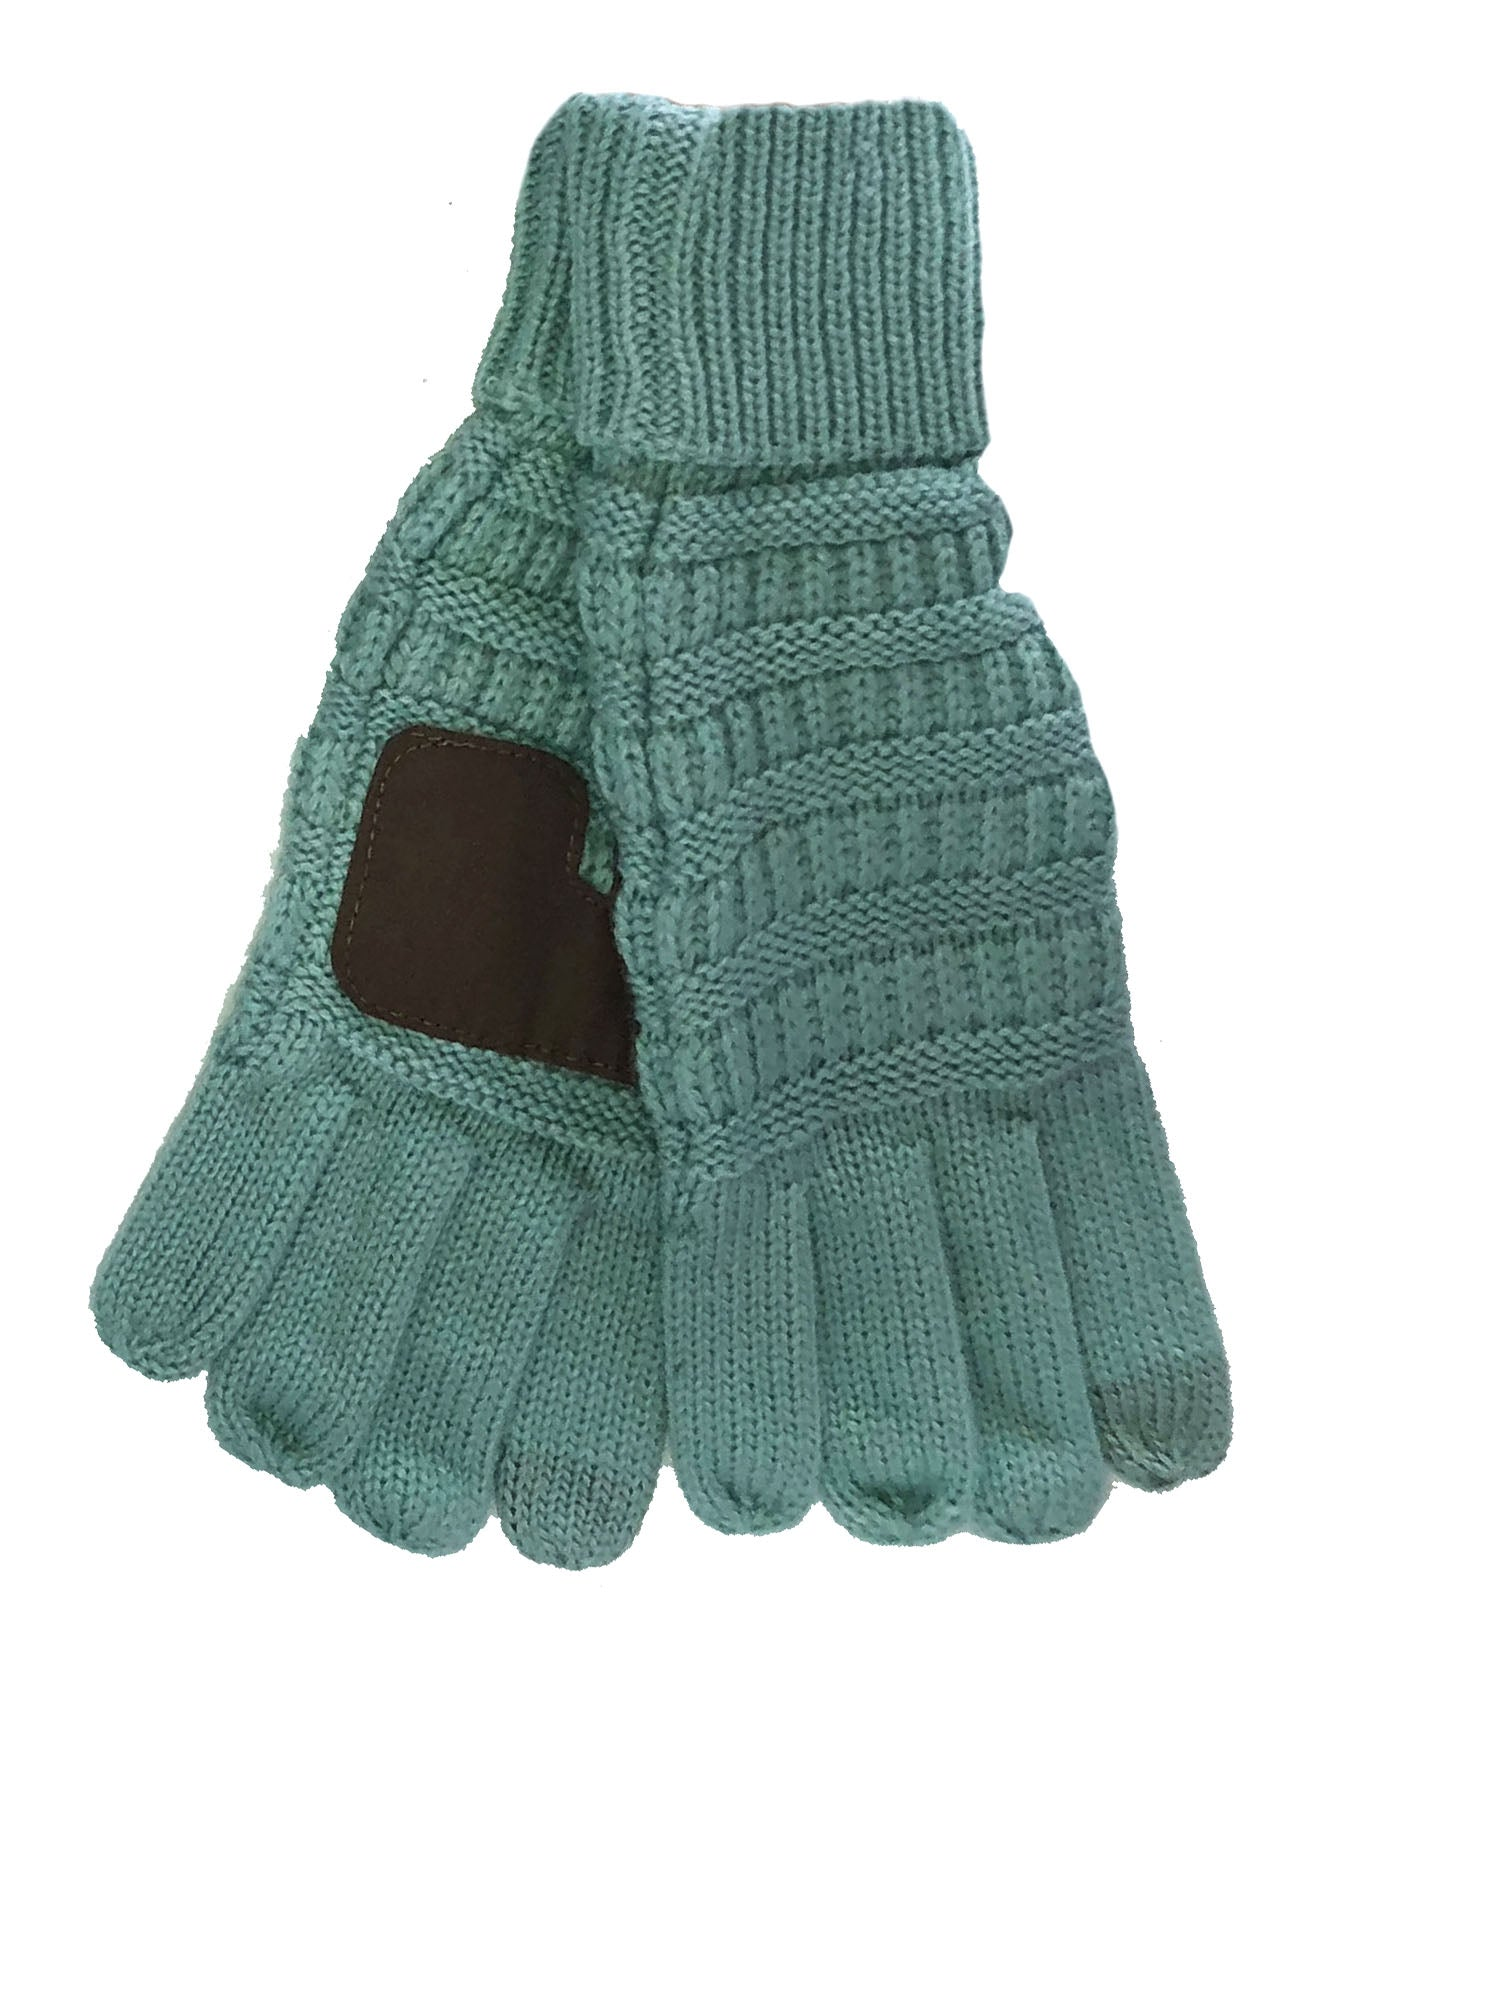 G-20 C.C Mint Gloves